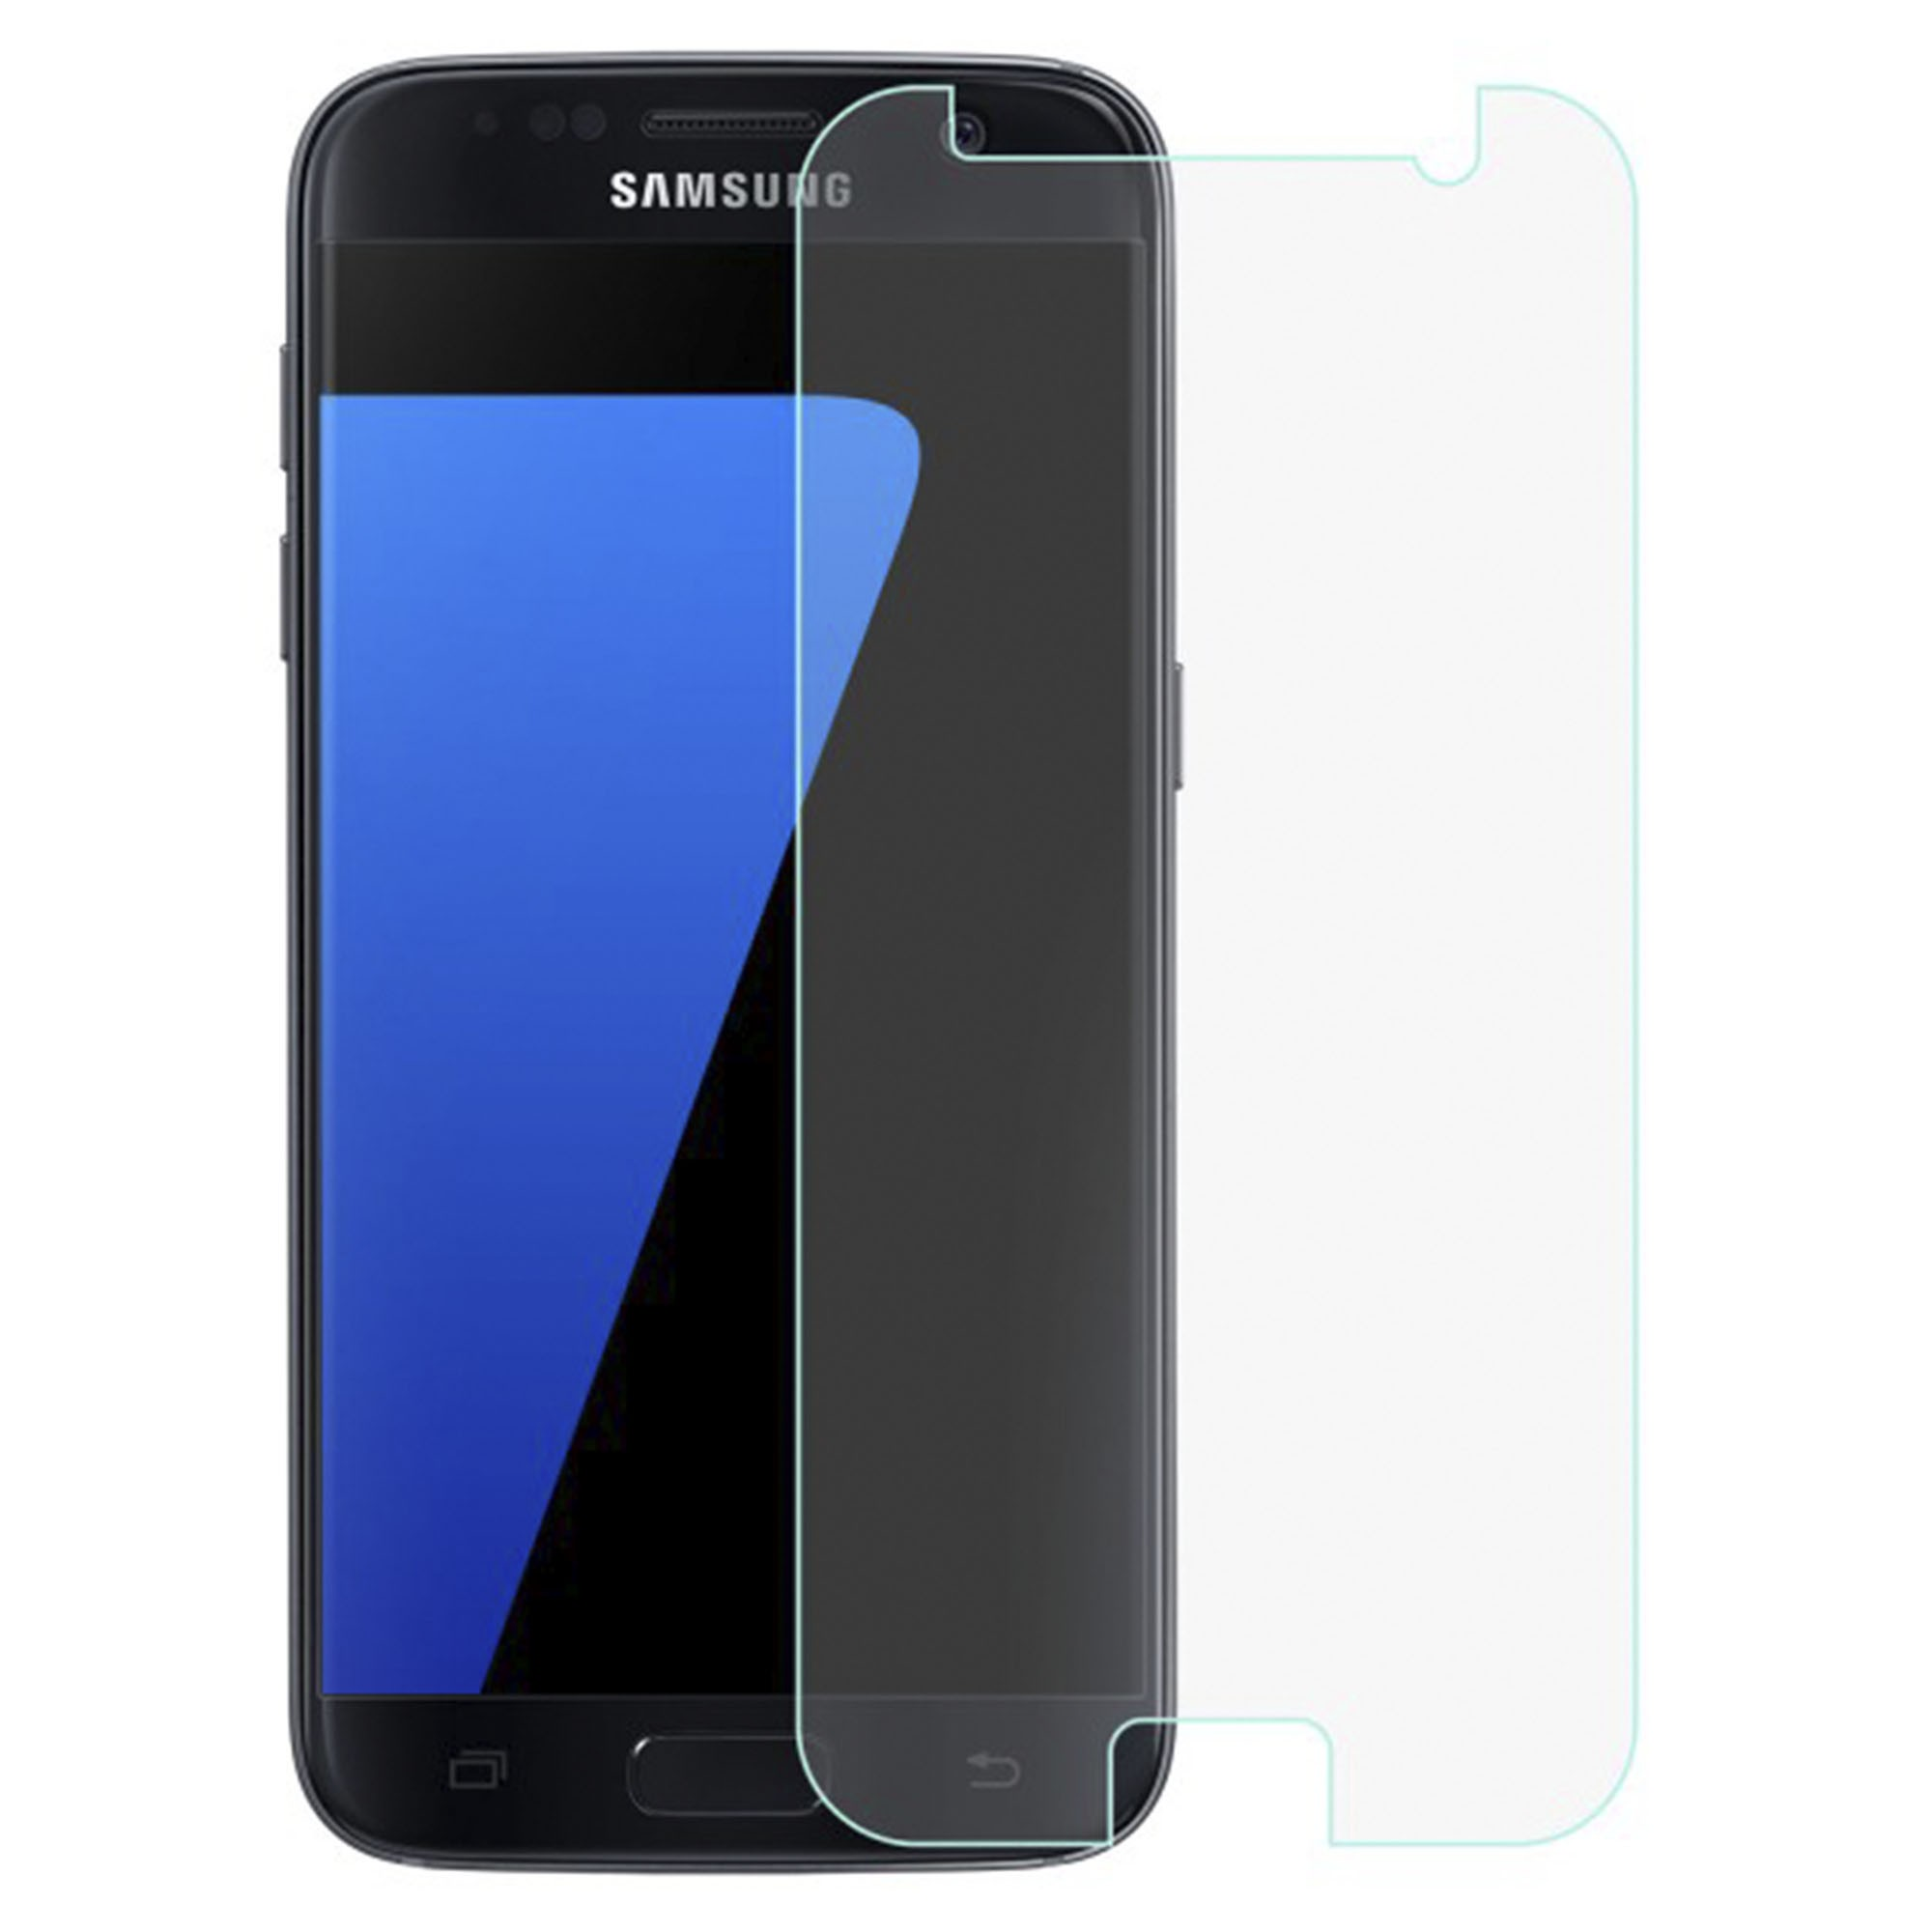 6787a45acbe Samsung Galaxy S7 Round Edge 9H Tem (end 1/26/2021 12:00 AM)